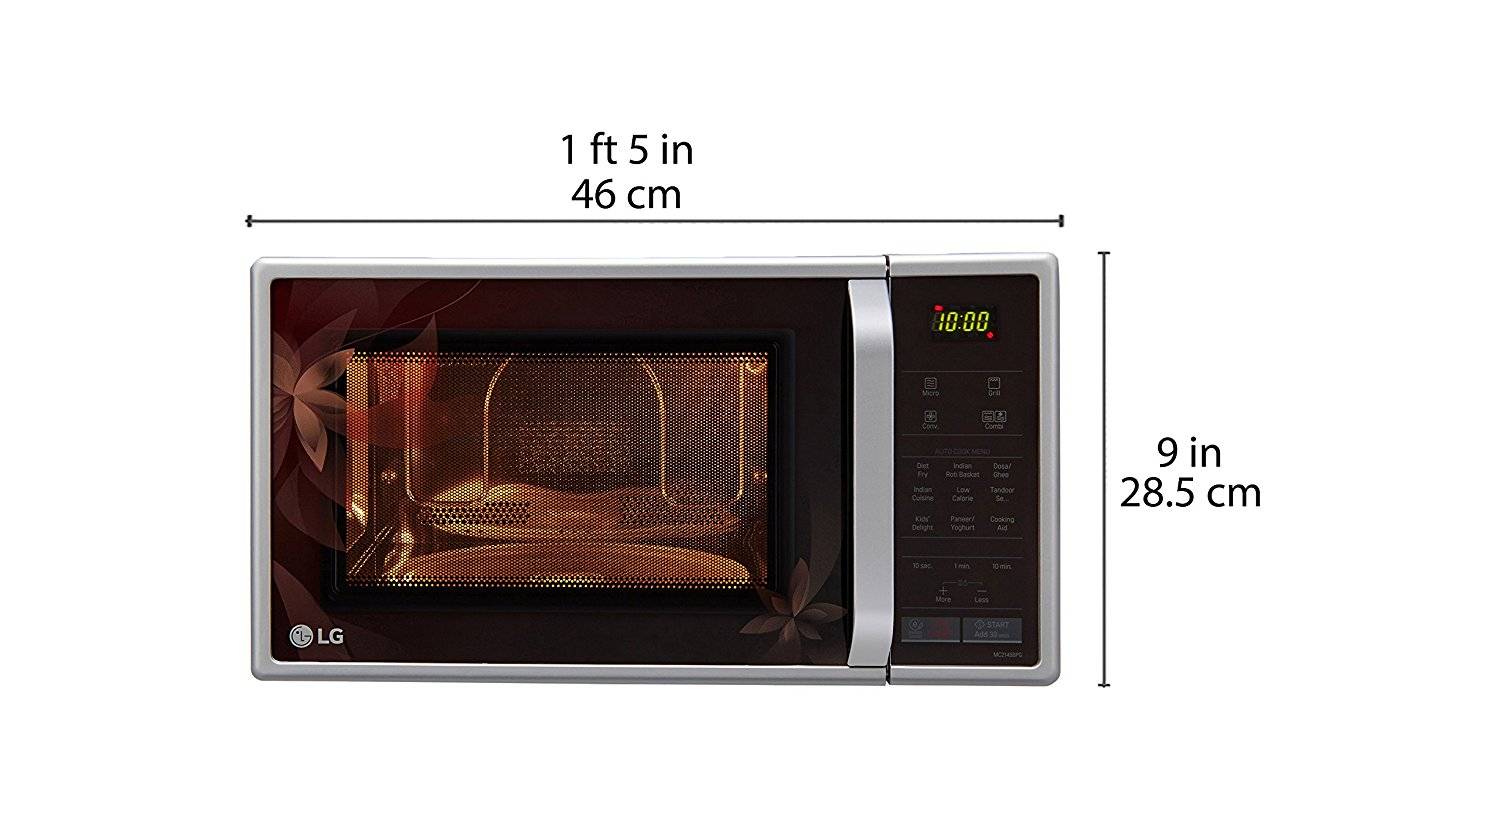 Silver Color LG Microwave Oven High Capacity